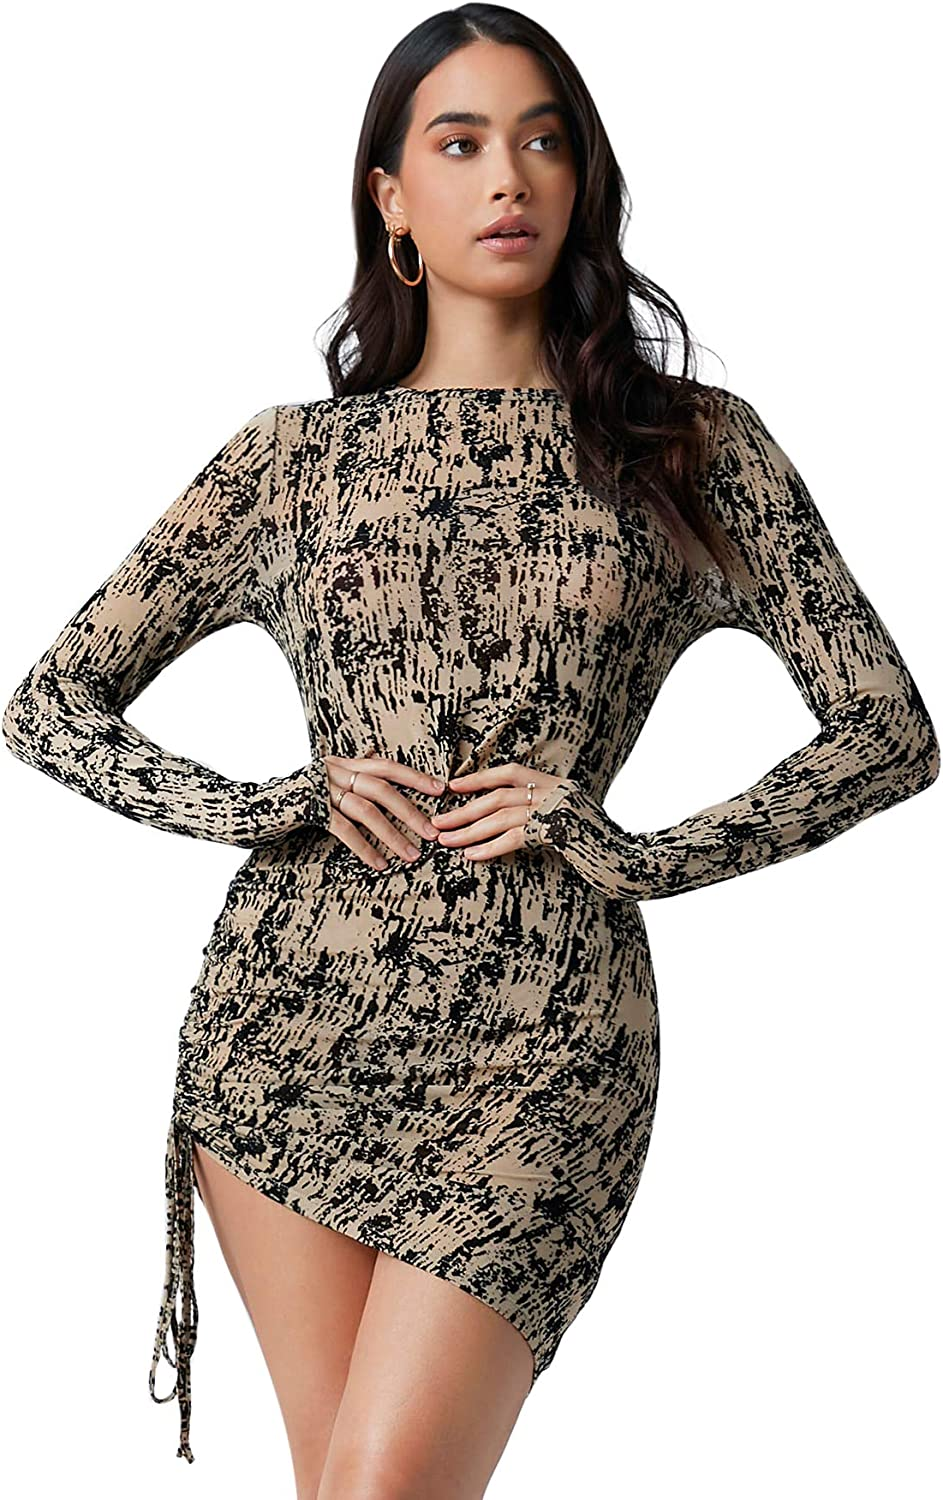 Romwe Women's Allover Print Long Sleeve Drawstring Ruched Side Party Short Bodycon Dress